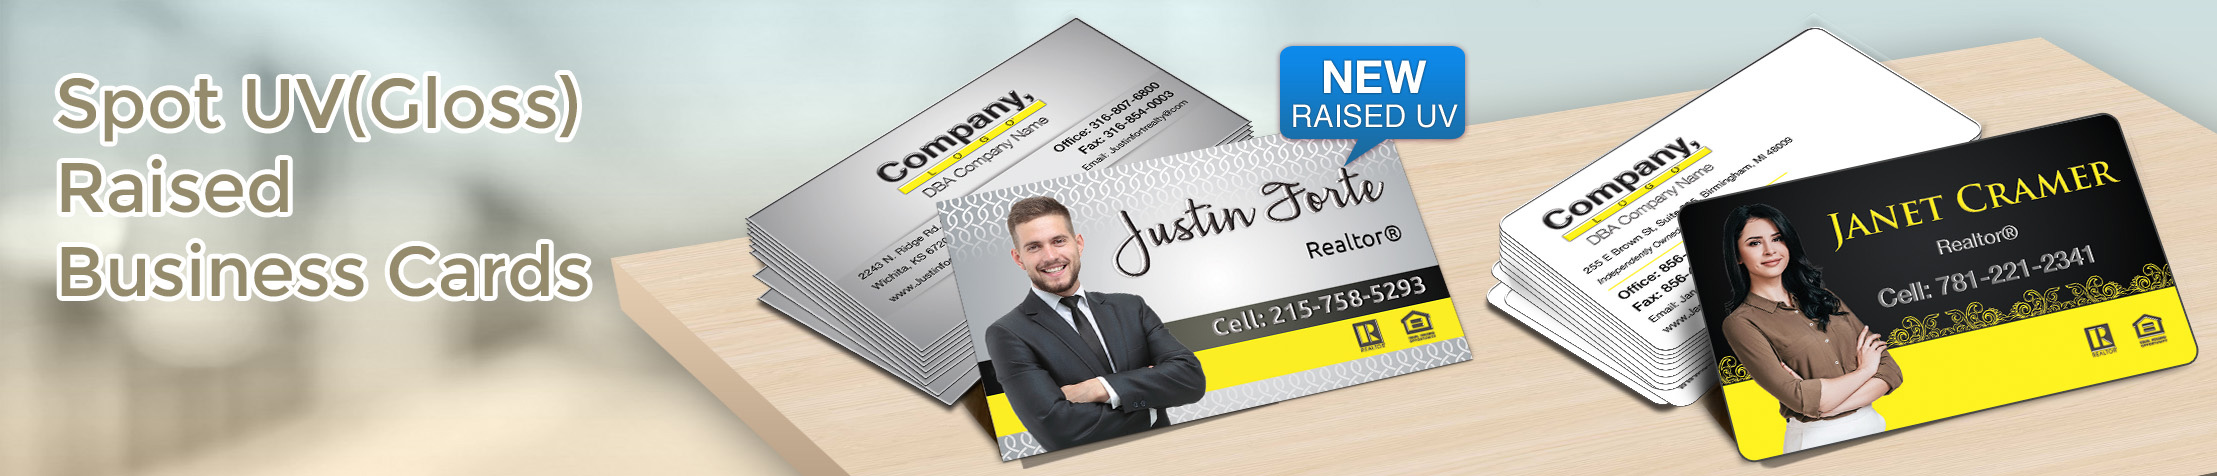 Weichert Real Estate Spot UV(Gloss) Raised Business Cards - Weichert - Glossy, Embossed Business Cards for Realtors | BestPrintBuy.com